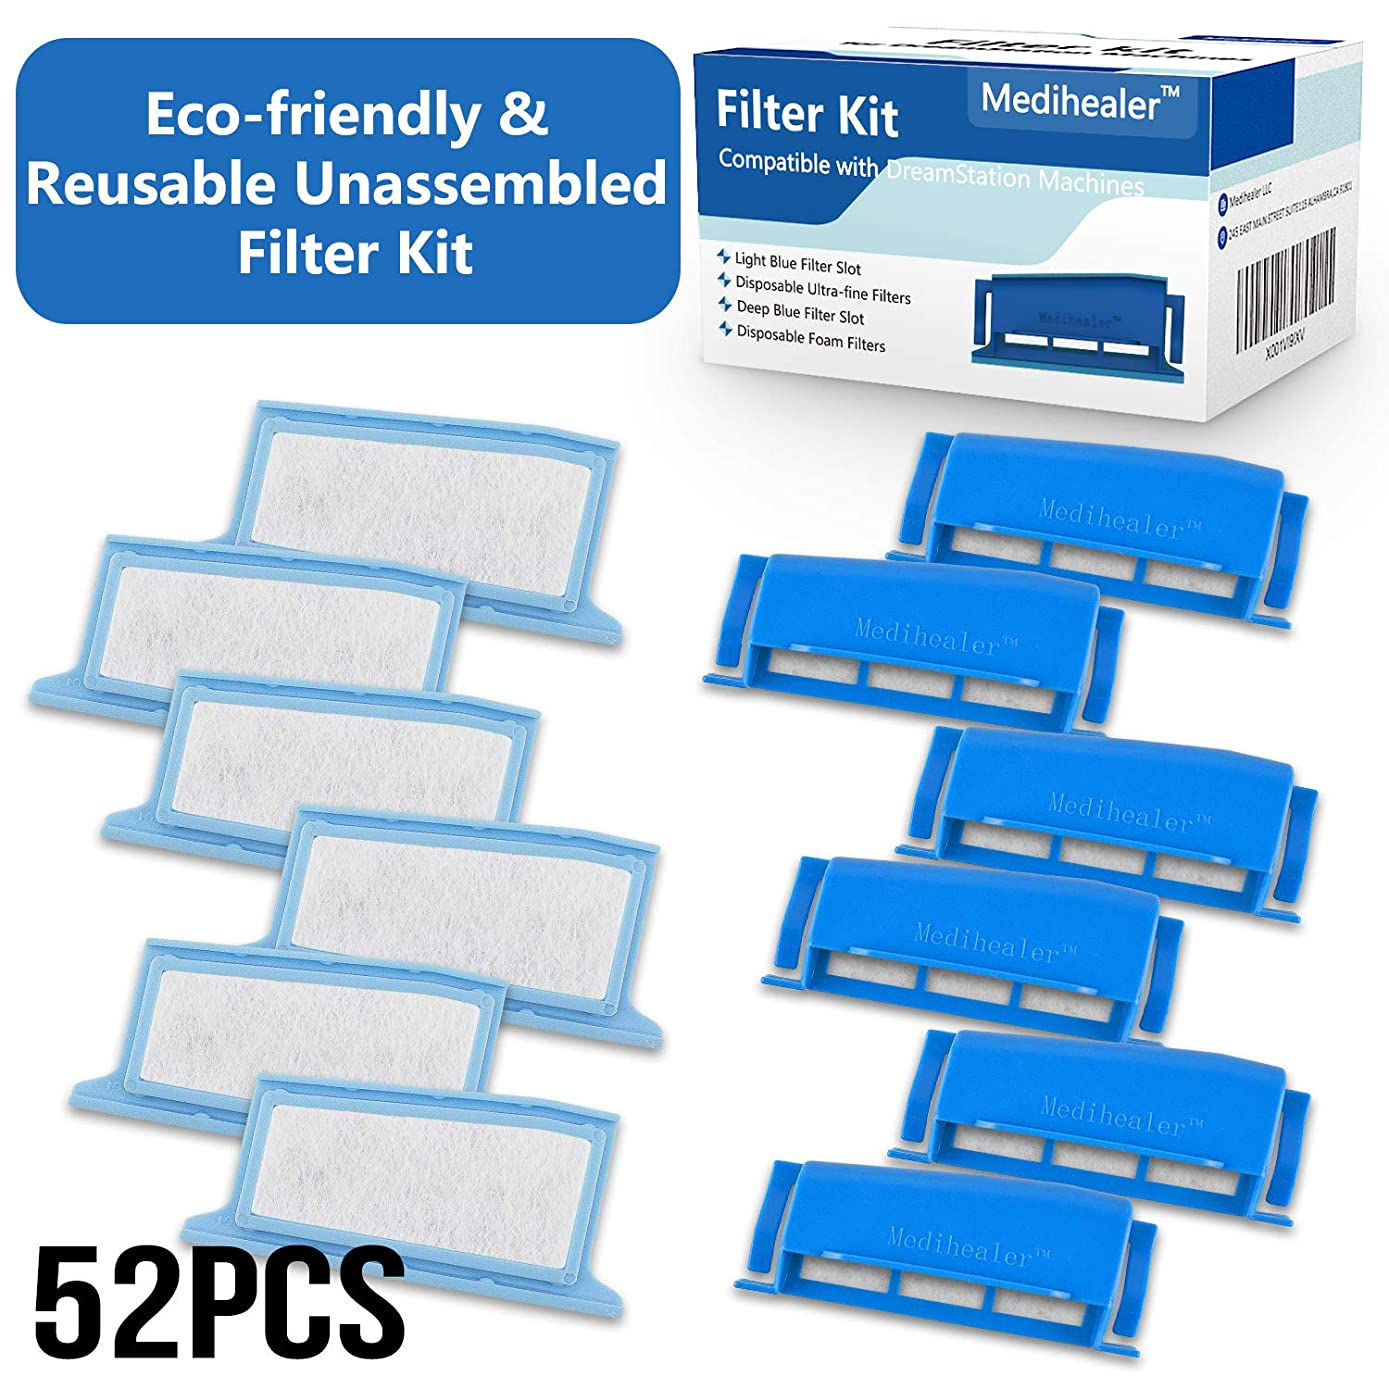 CPAP Filters Kit Fit Respironics Dreamstation 52 Pack:6 Assembled Filters+ 20 Ultra-fine+20 Foam-Pollen & Hypoallergenic,Put Filter into Frame Kit Fit Philips Dreamstation-Medihealer Filters Supplies